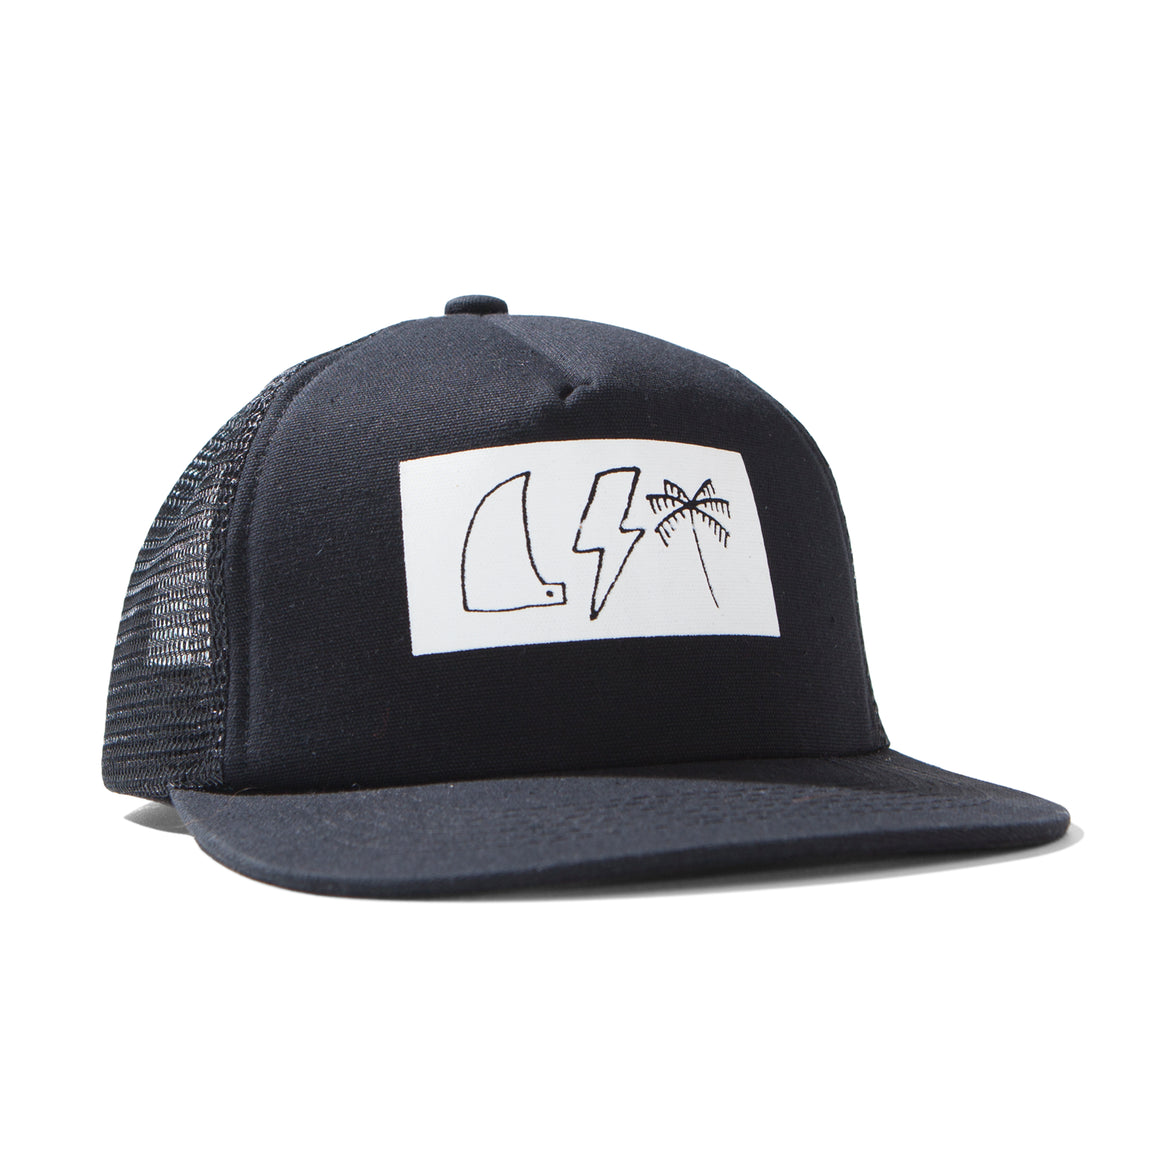 MUNSTERKIDS Single Black/White Cap